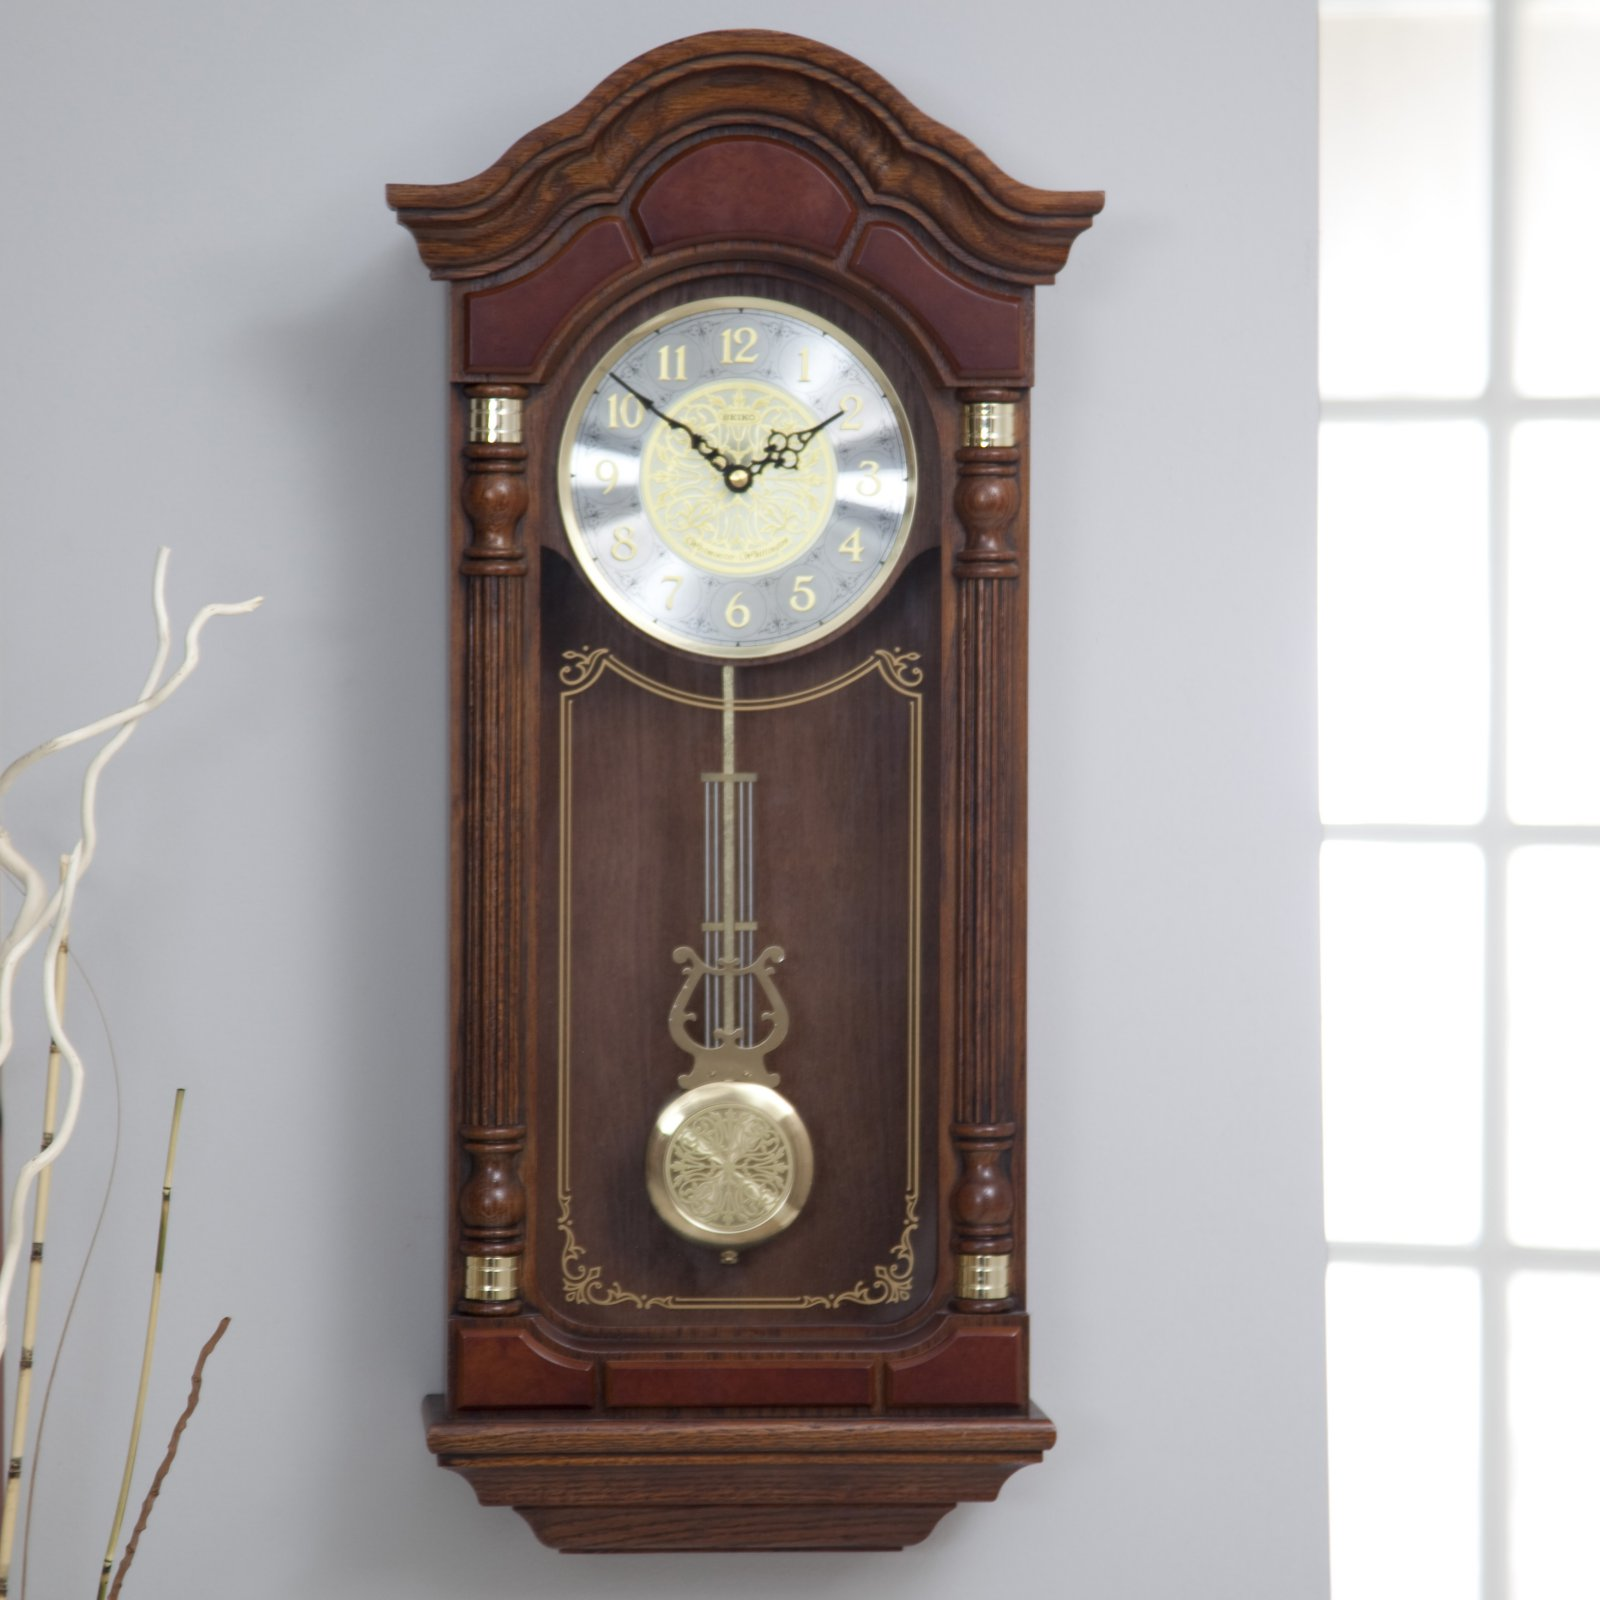 Traditional Wall Clock by Seiko - 12.5 Inches Wide